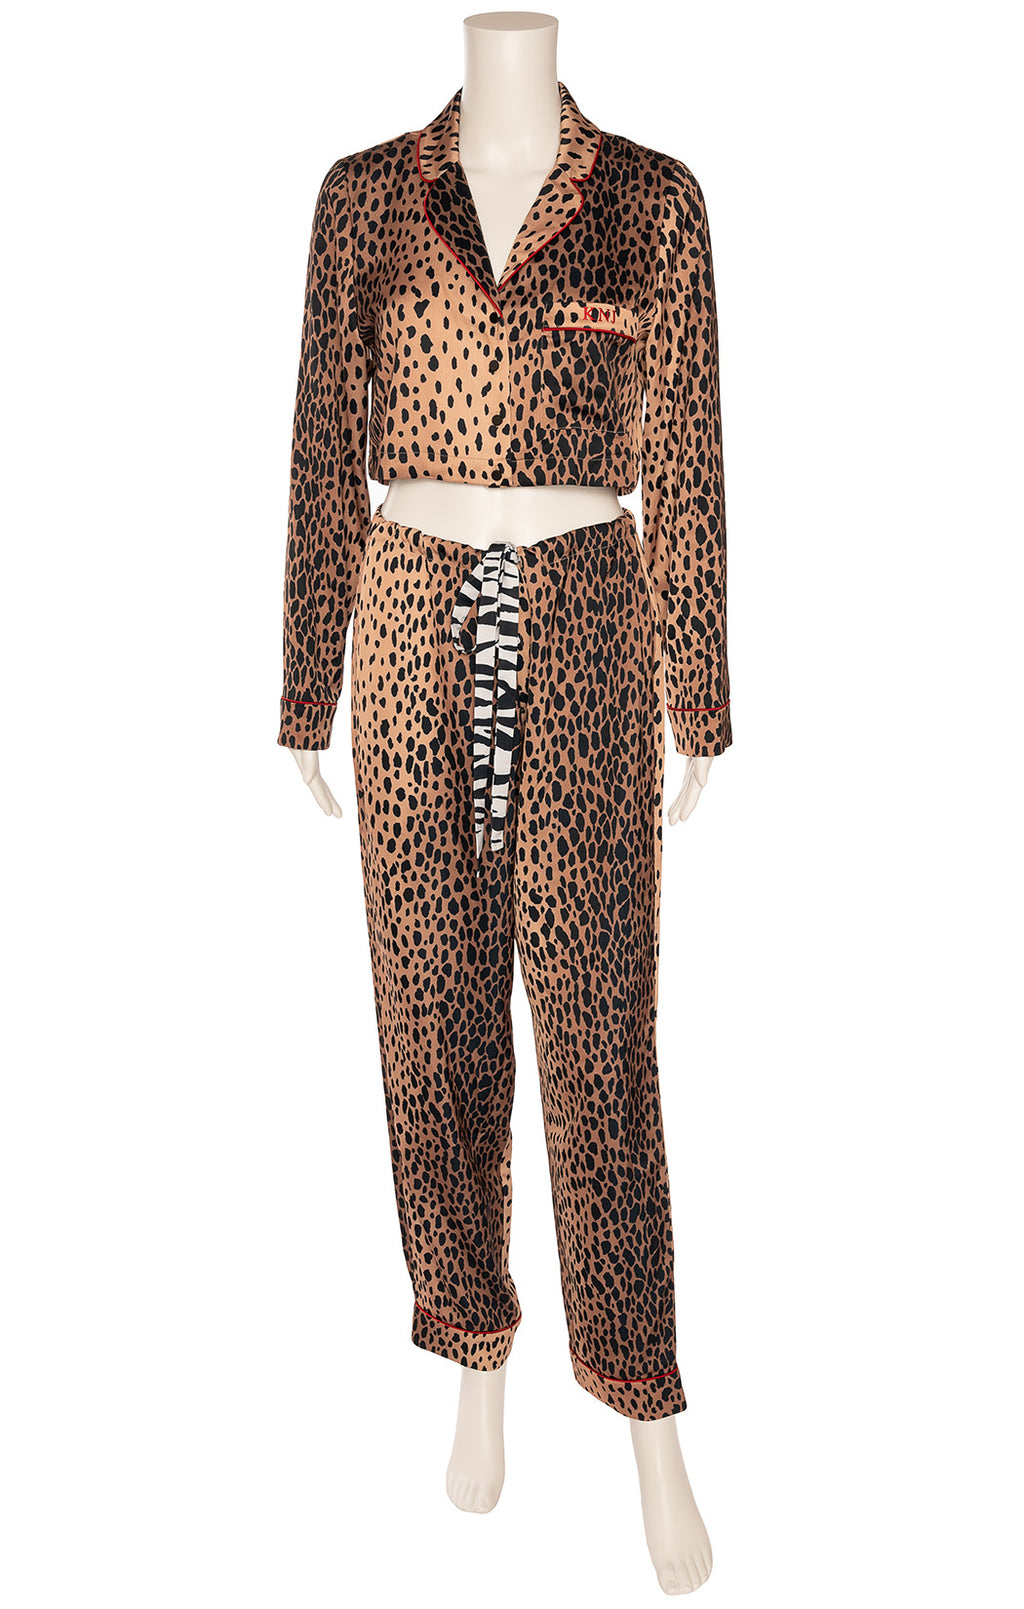 Leopard print crop top matching pajamas made to order for Kendall with her initials on pocket